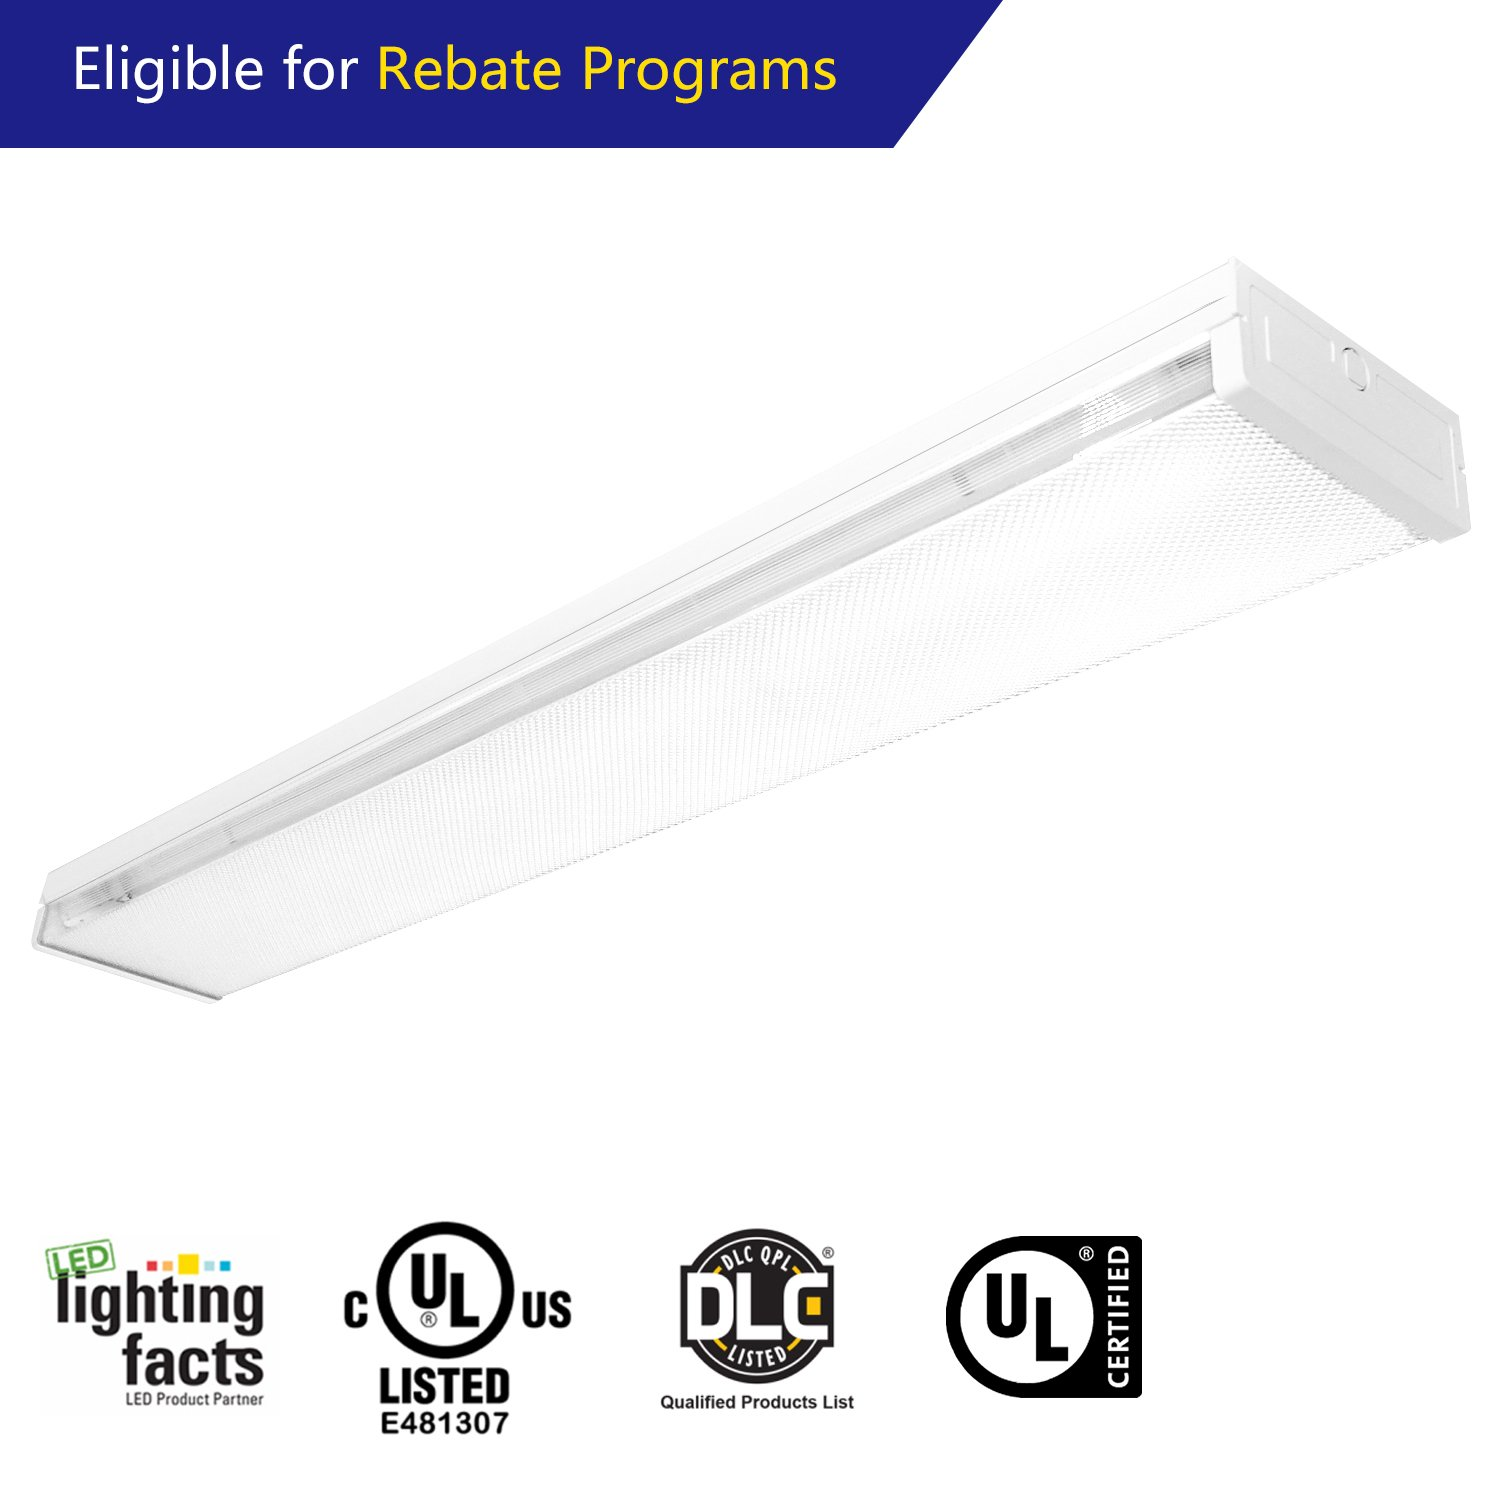 EVE 4ft 42W LED Wraparound Flush Mount Commercial Office Ceiling Lamp,Frost Cover Dimmable driver,5460lm Daylight 5000K for Garage Shop,Laundry Rooms, Hallways, Offices(Eligible for Rebate Programs)